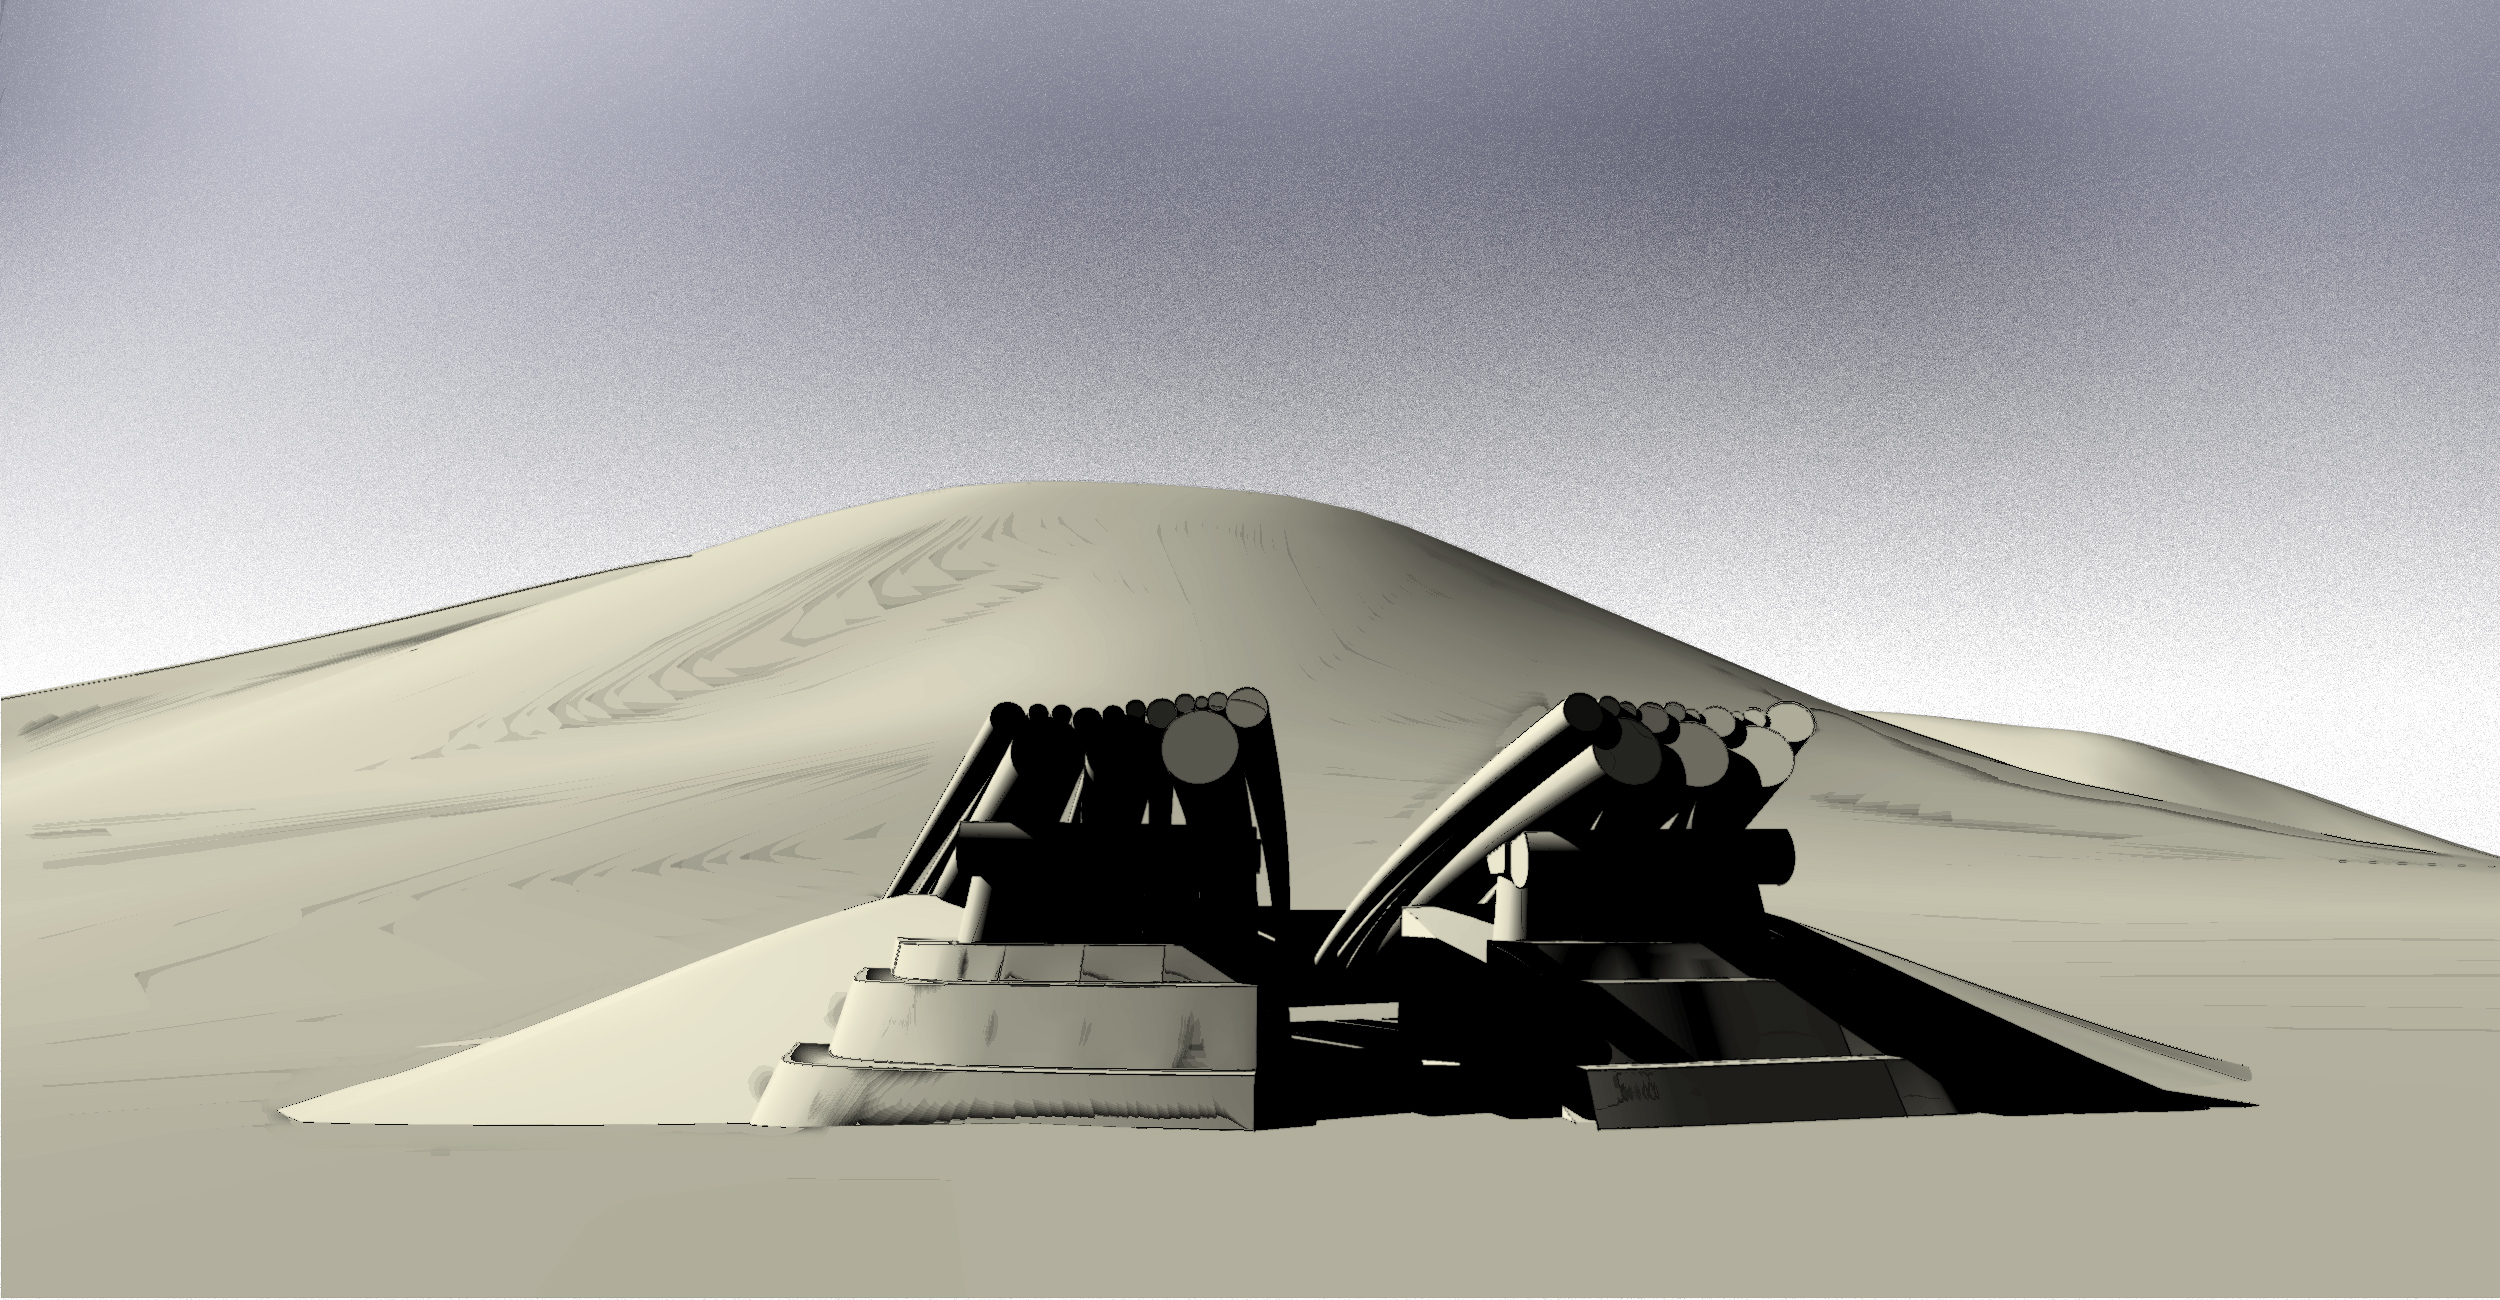 Future Monument (2009) berm concept development